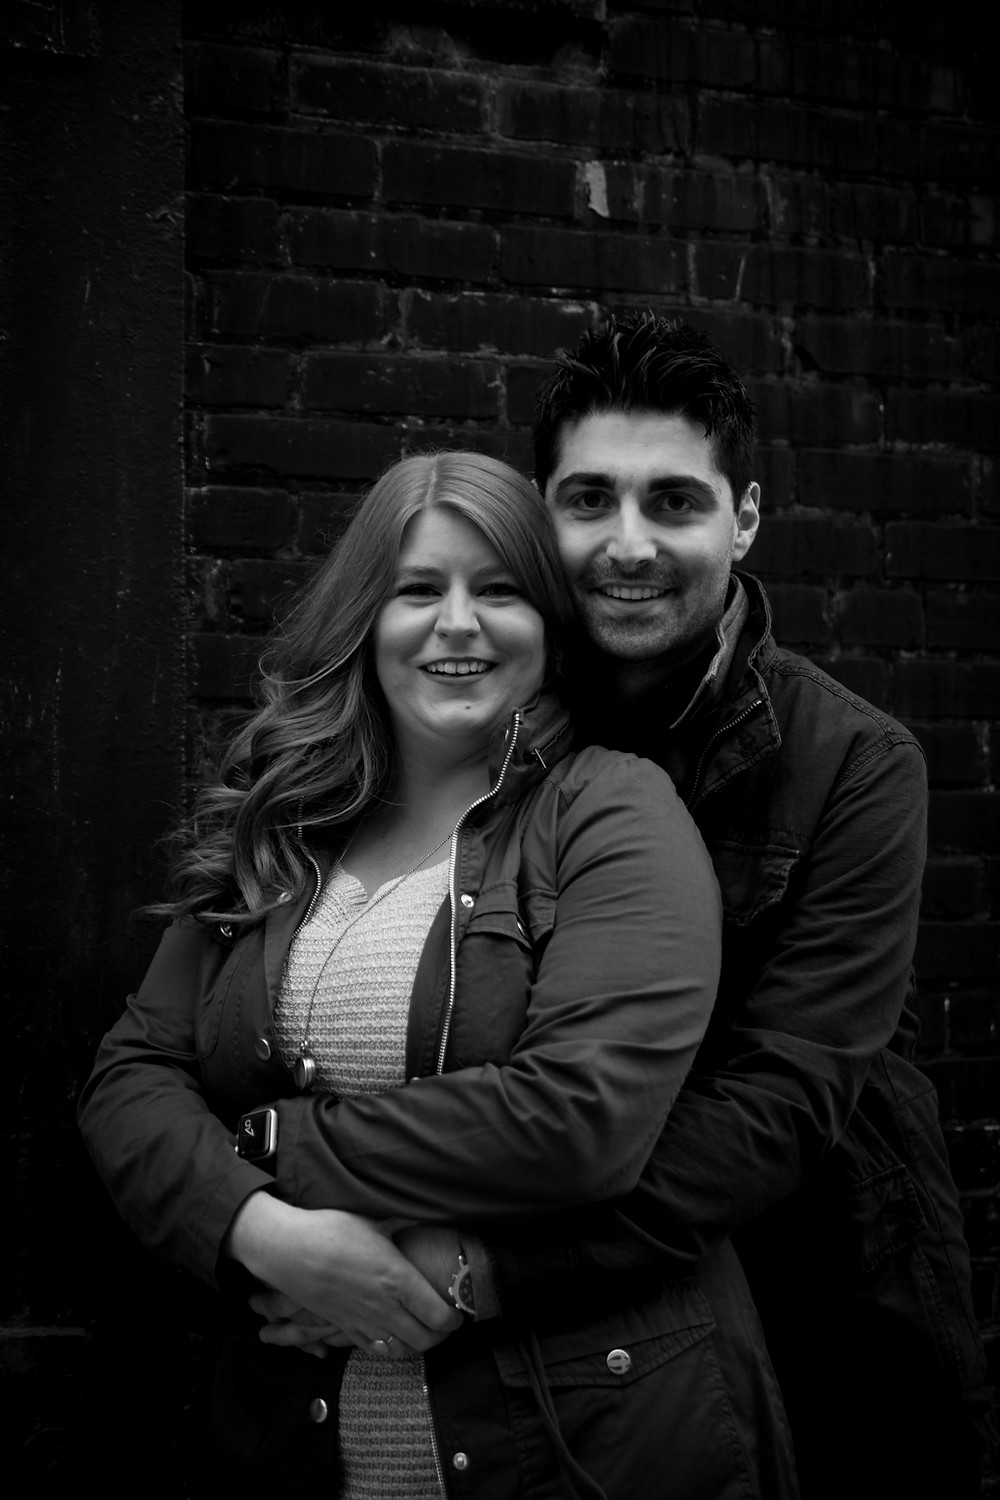 cobblestone district industrial couples engagement photo shoot